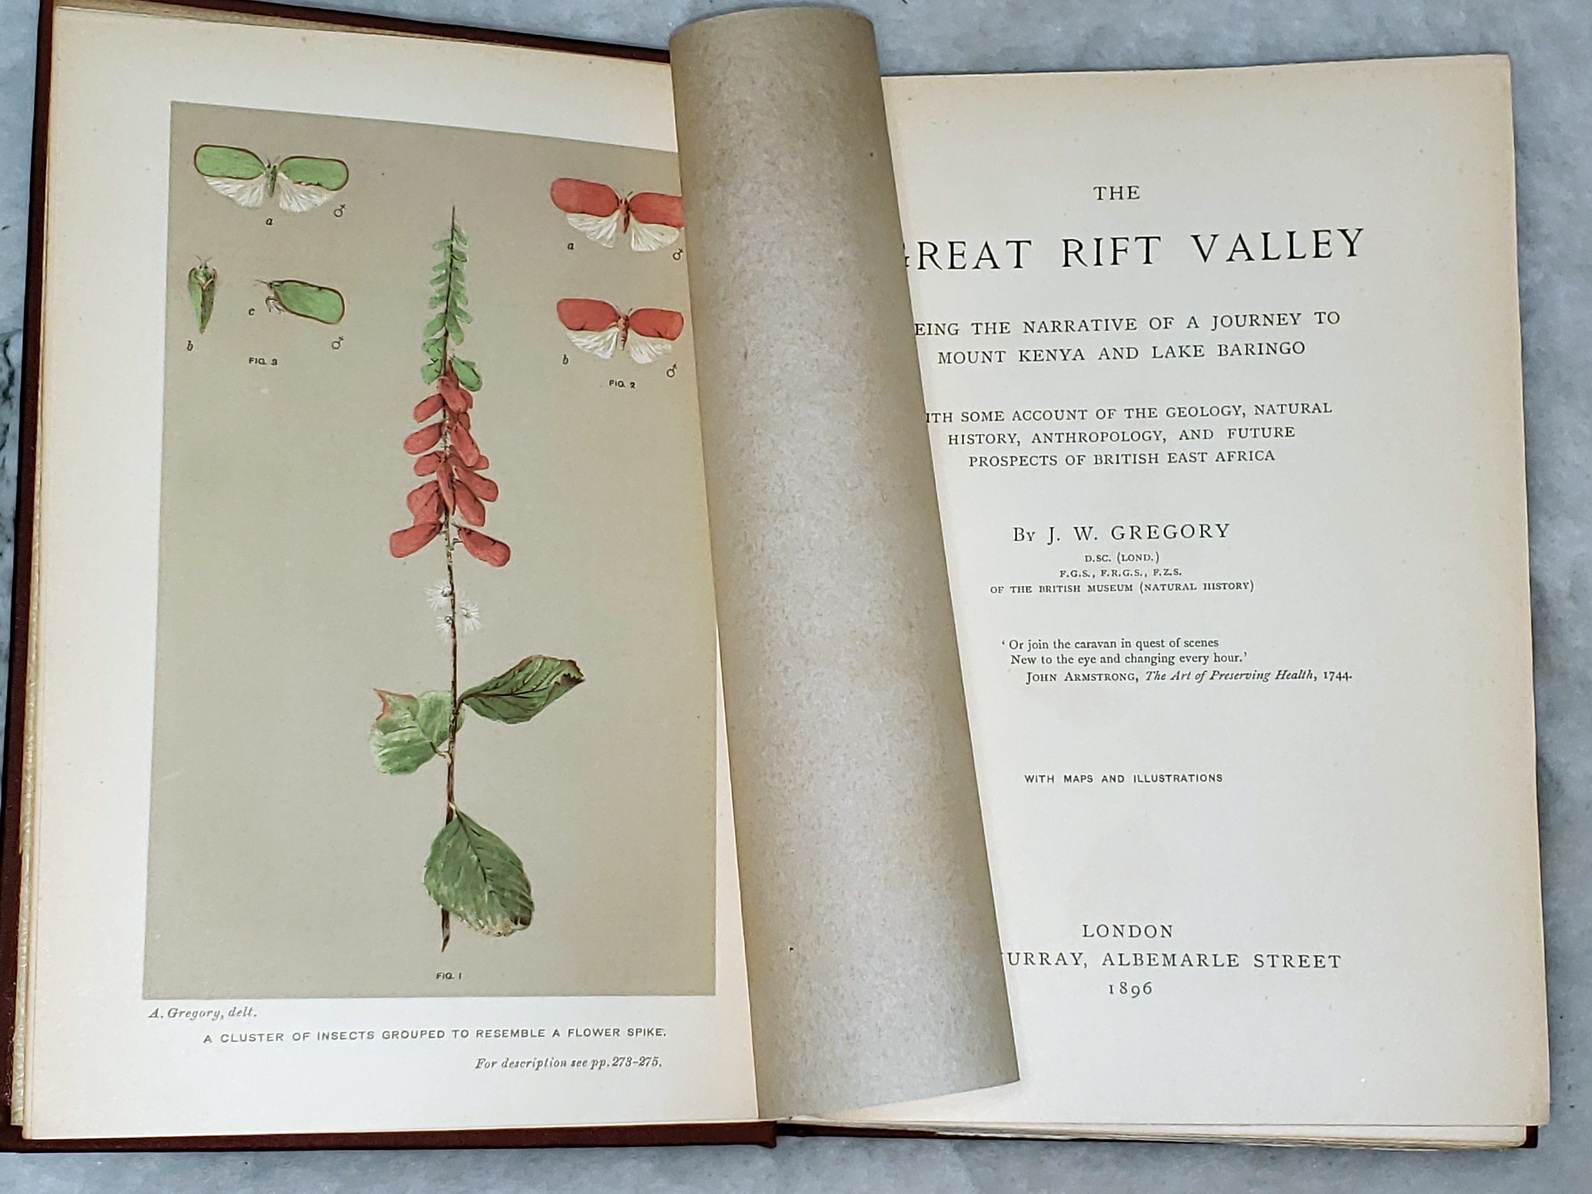 Image for The Great Rift Valley:  Being the Narrative of a Journey to Mount Kenya and Lake Baringo with Some Account of the Geology, Natural History, Anthropology, and Future Prospects of British East Africa